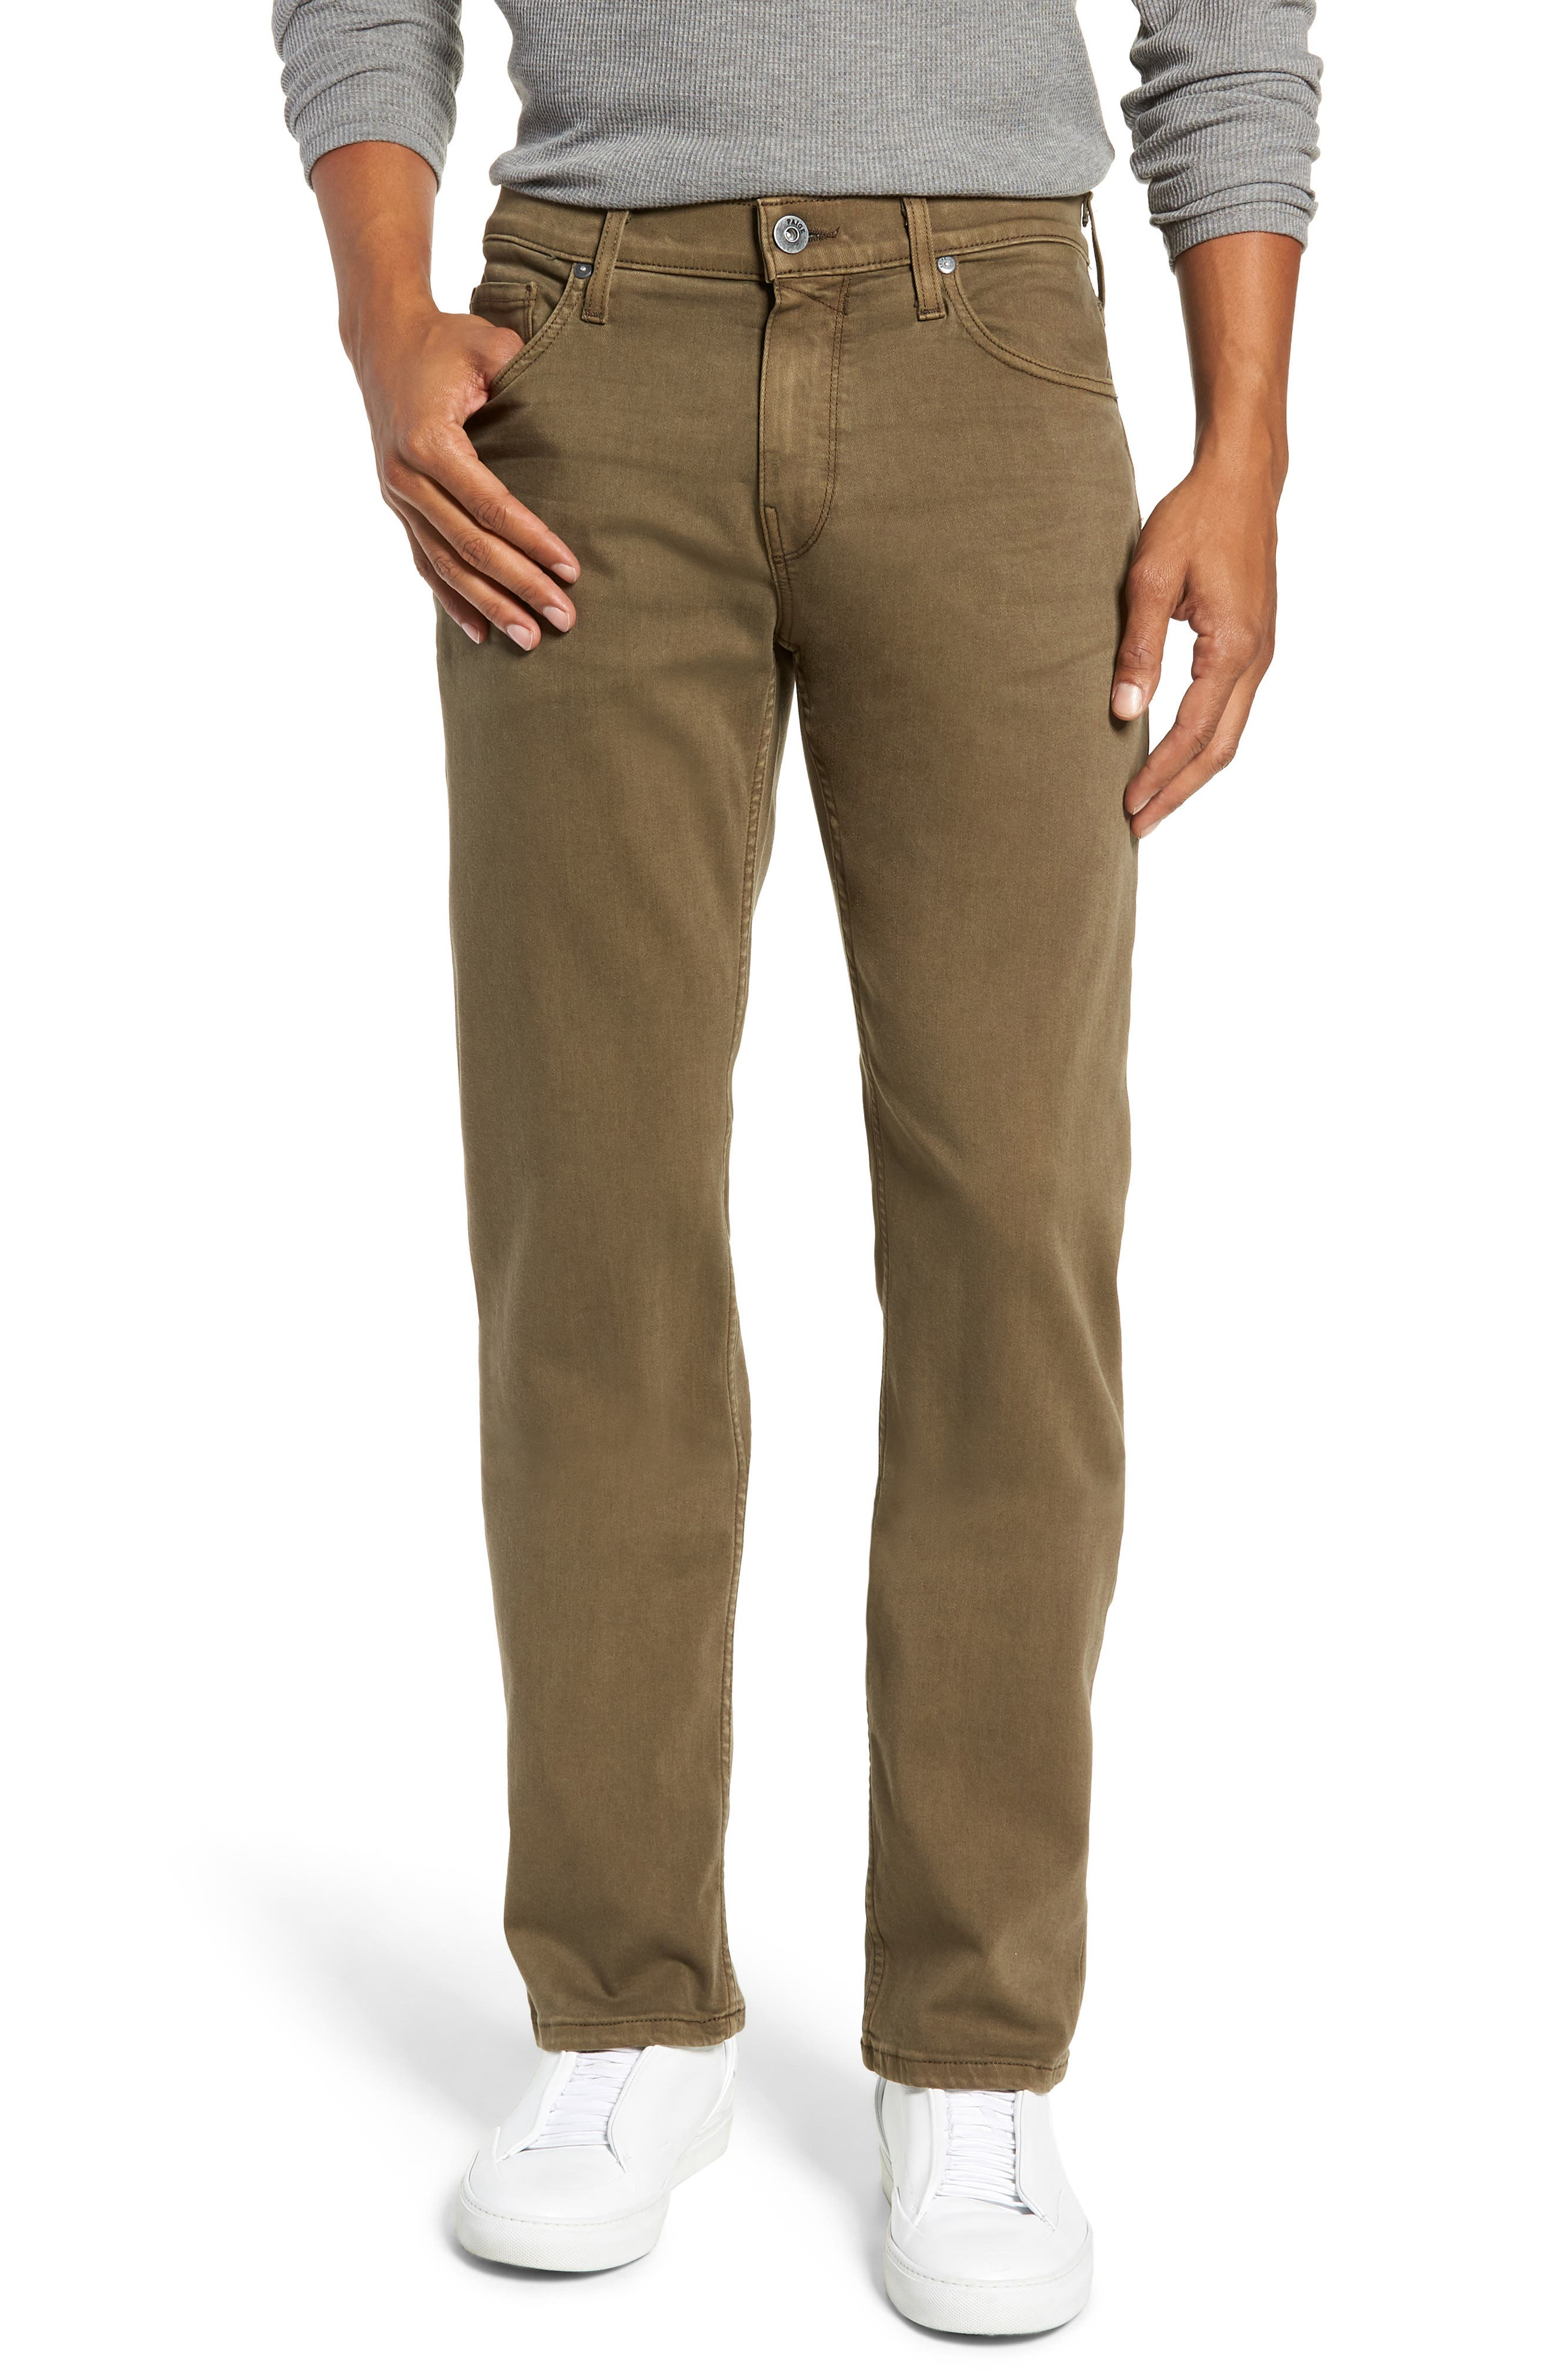 Men's Paige Transcend - Normandie Straight Leg Jeans